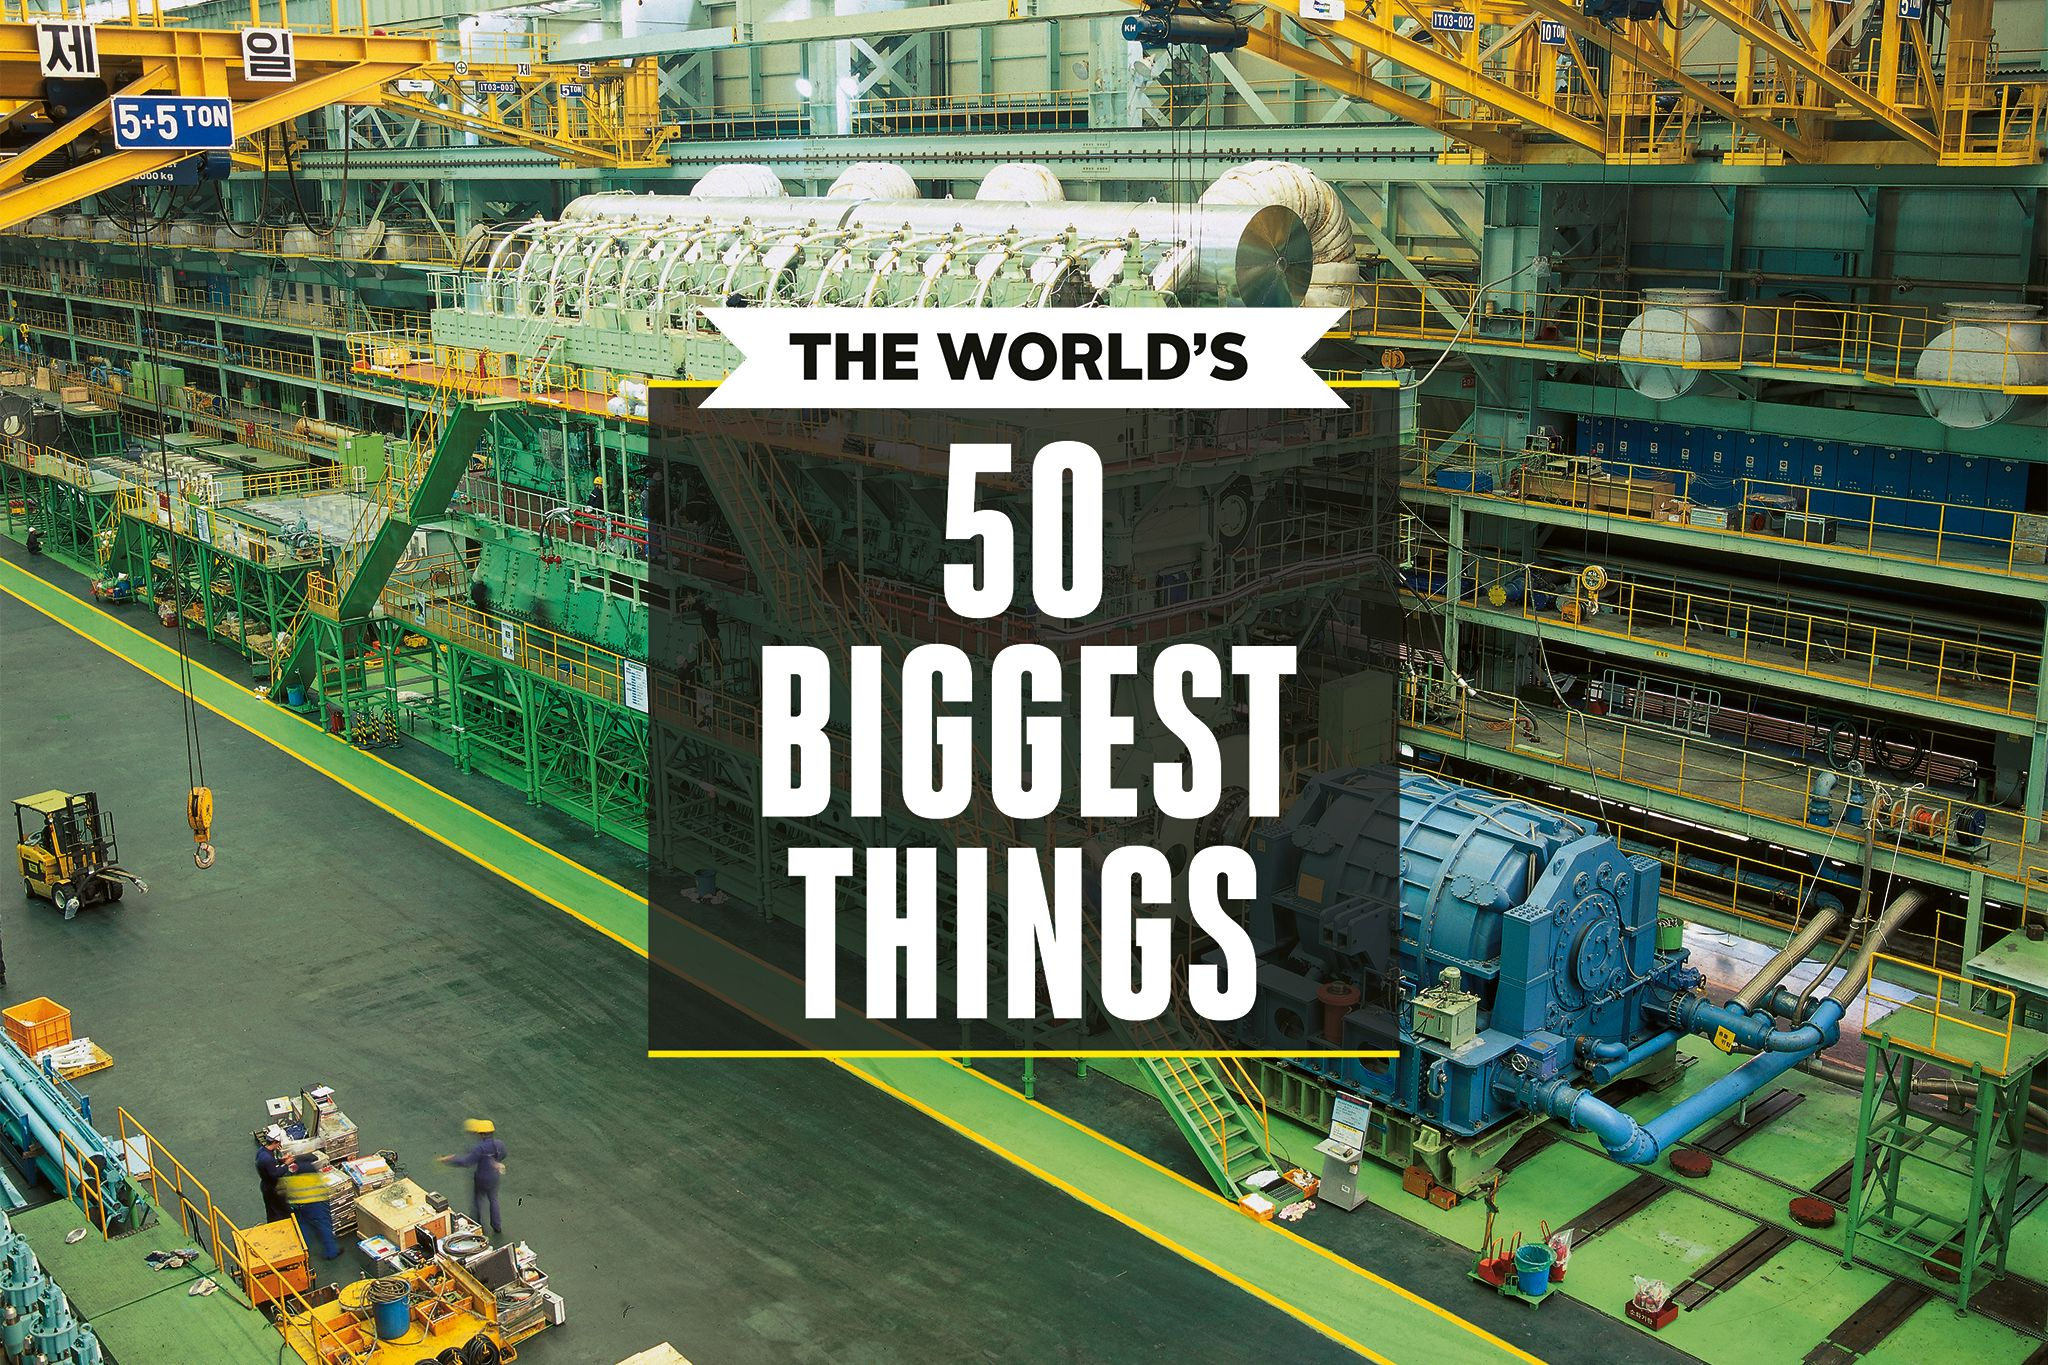 The 50 Biggest Things